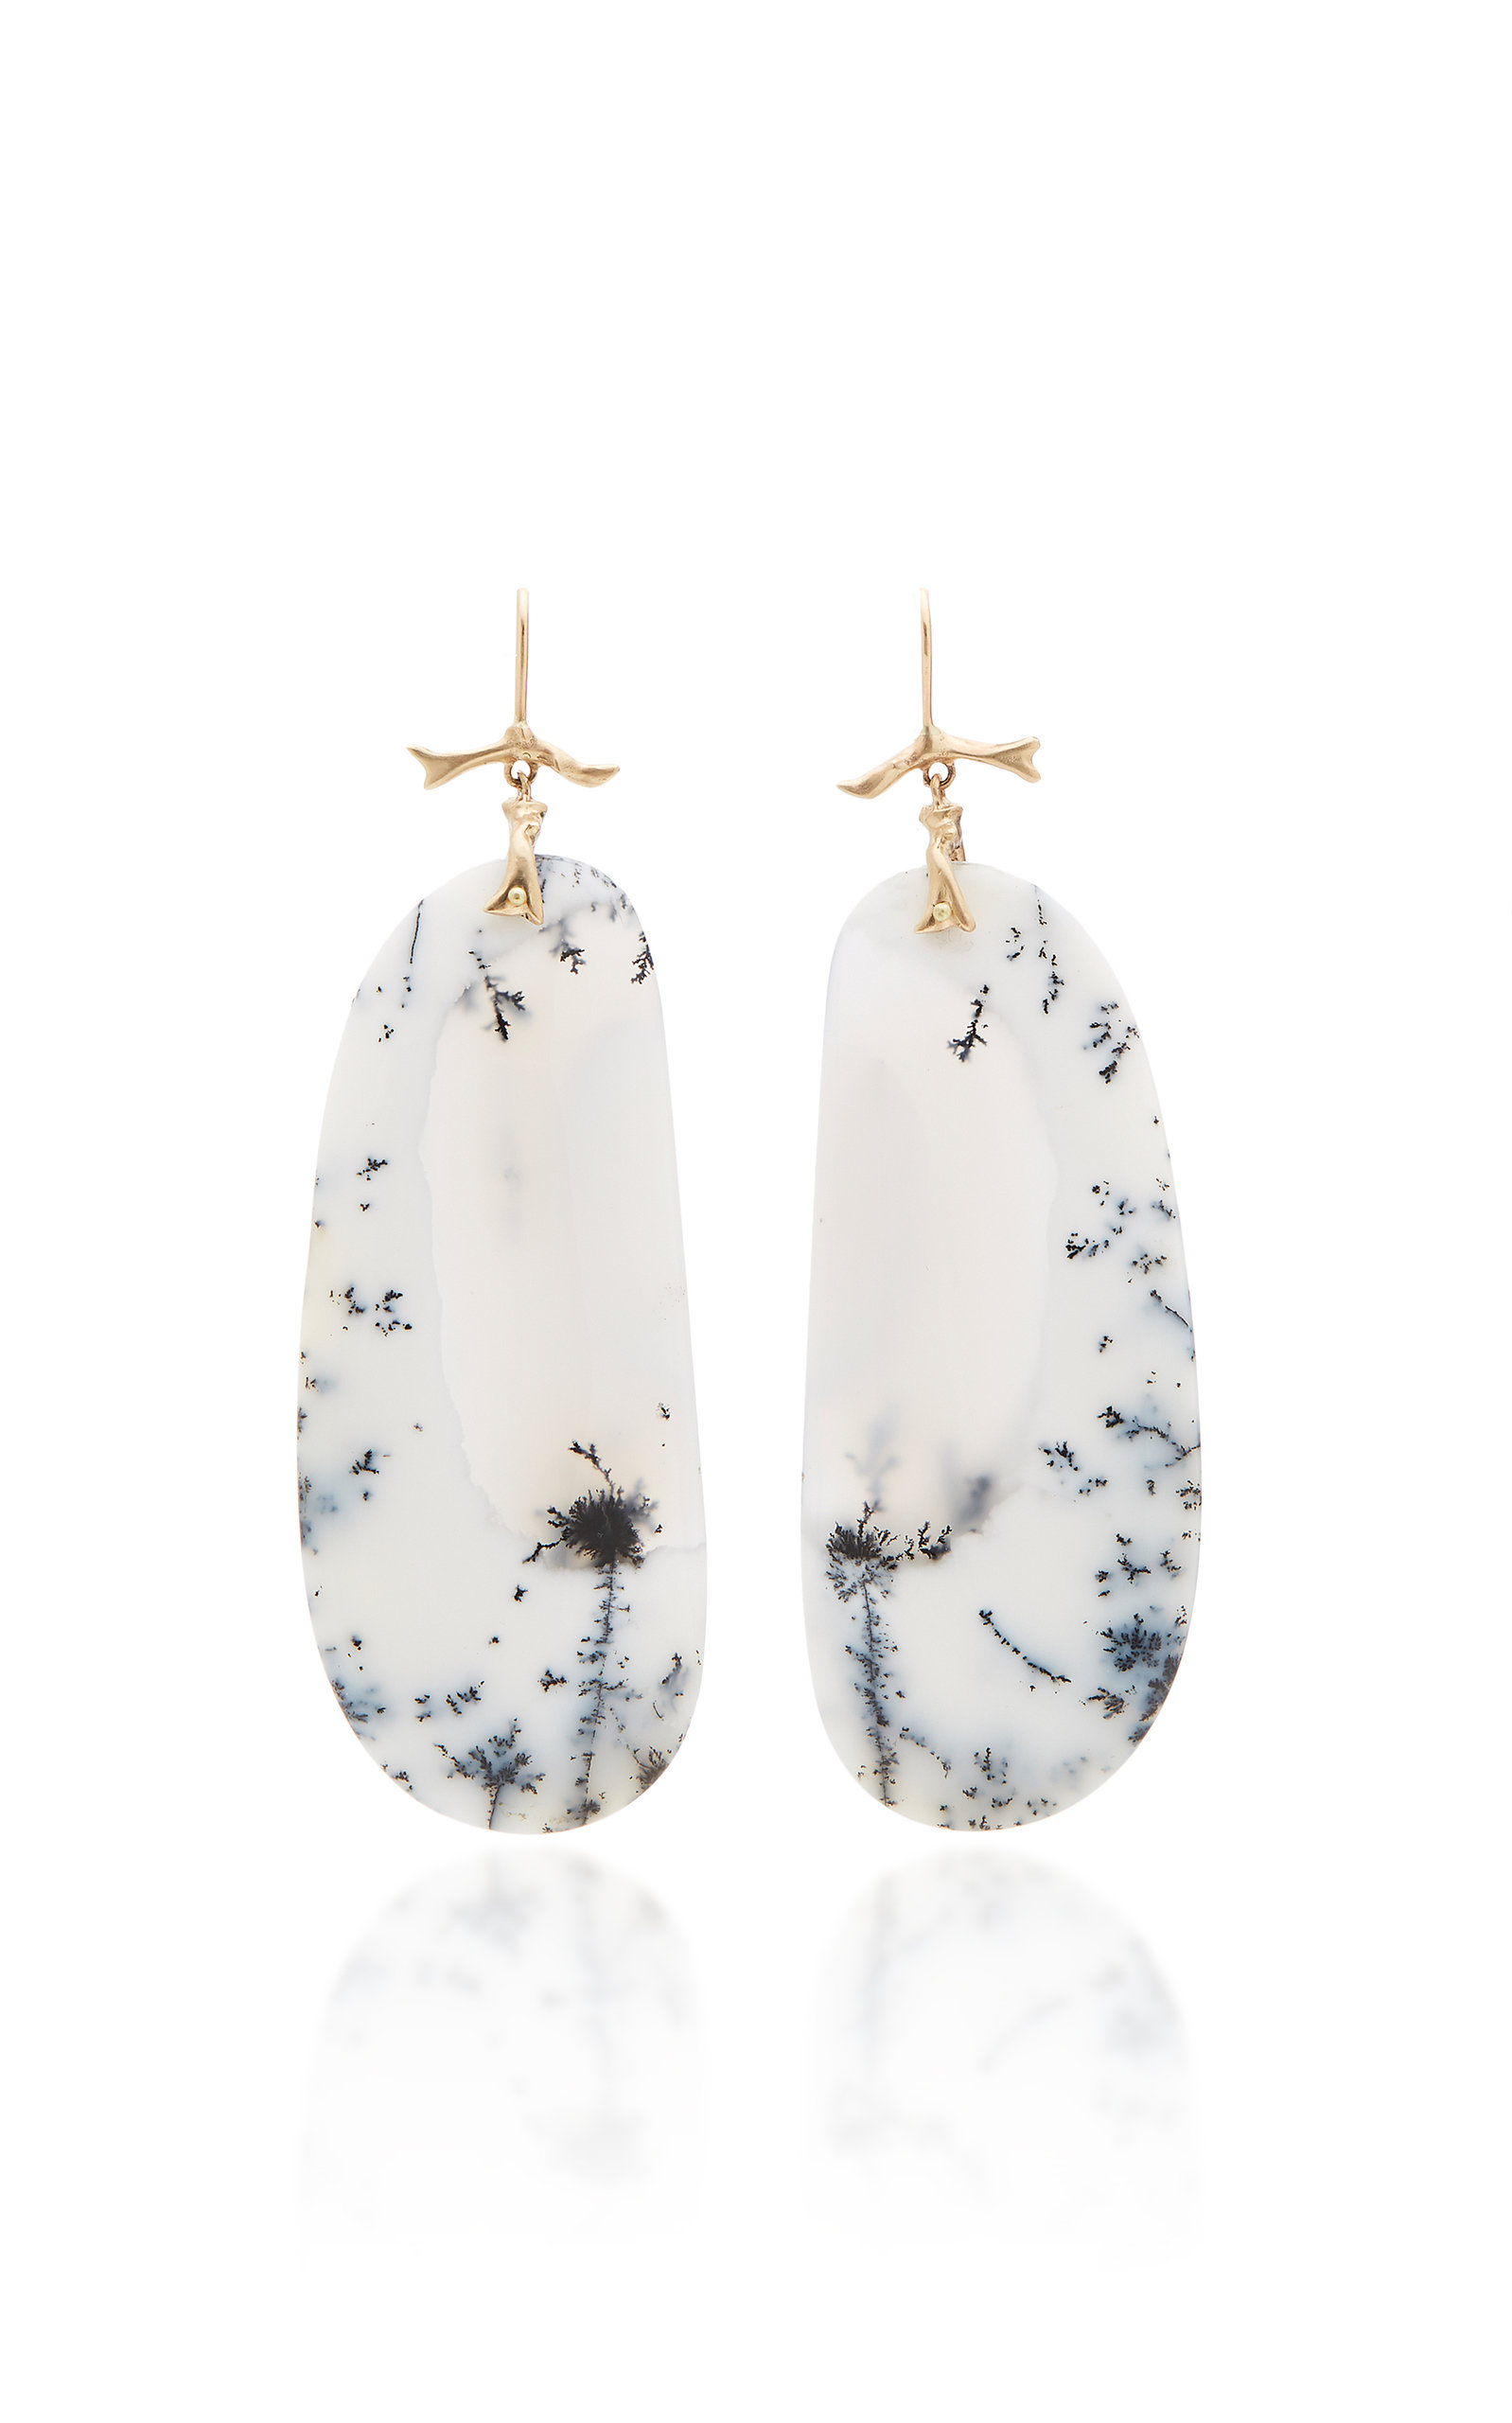 ANNETTE FERDINANDSEN M'O EXCLUSIVE: ONE-OF-A-KIND DENDRITIC WHITE OPAL BRANCH EARRINGS